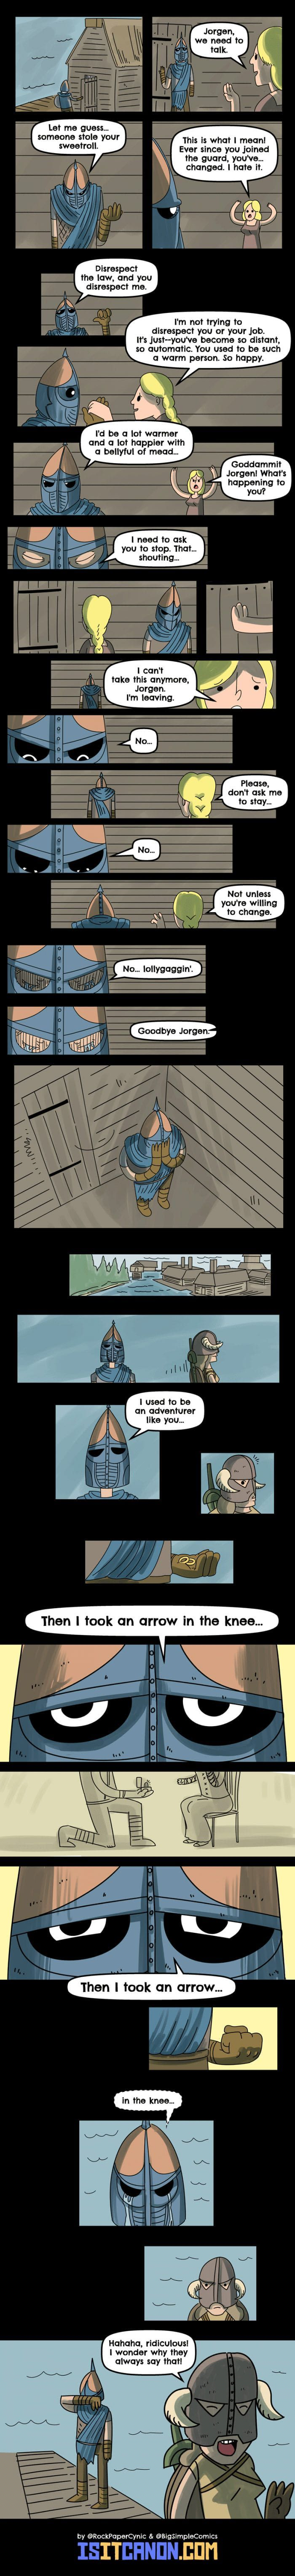 Now when I play to skyrim and I see a guard... I think about this